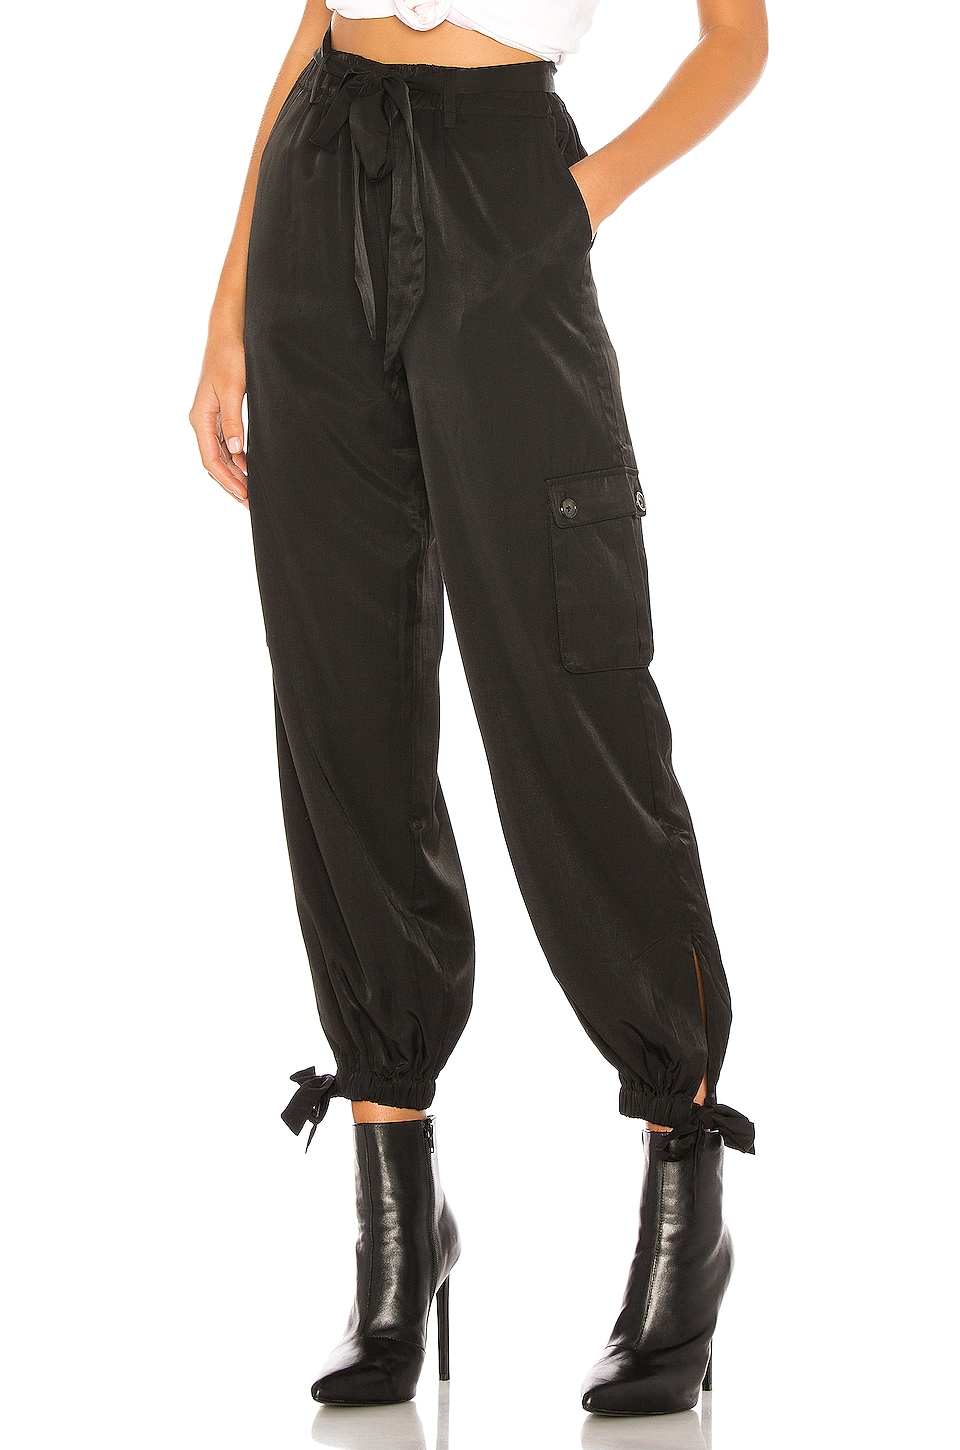 h:ours Simi Pants in Black